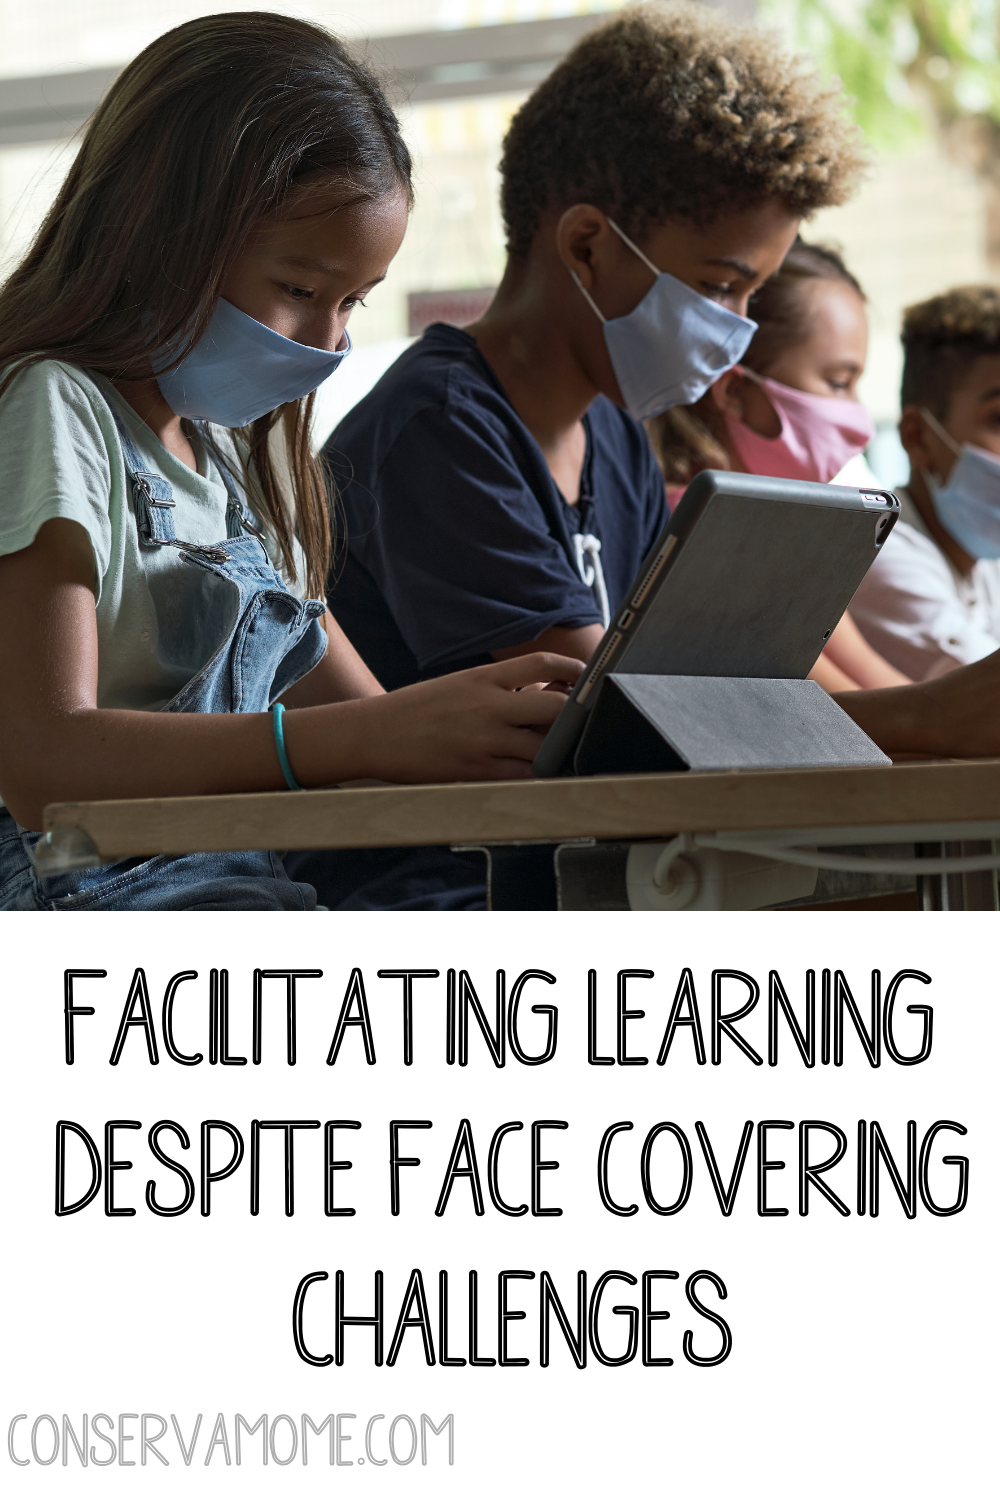 Facilitating Learning Despite Face Covering Challenges